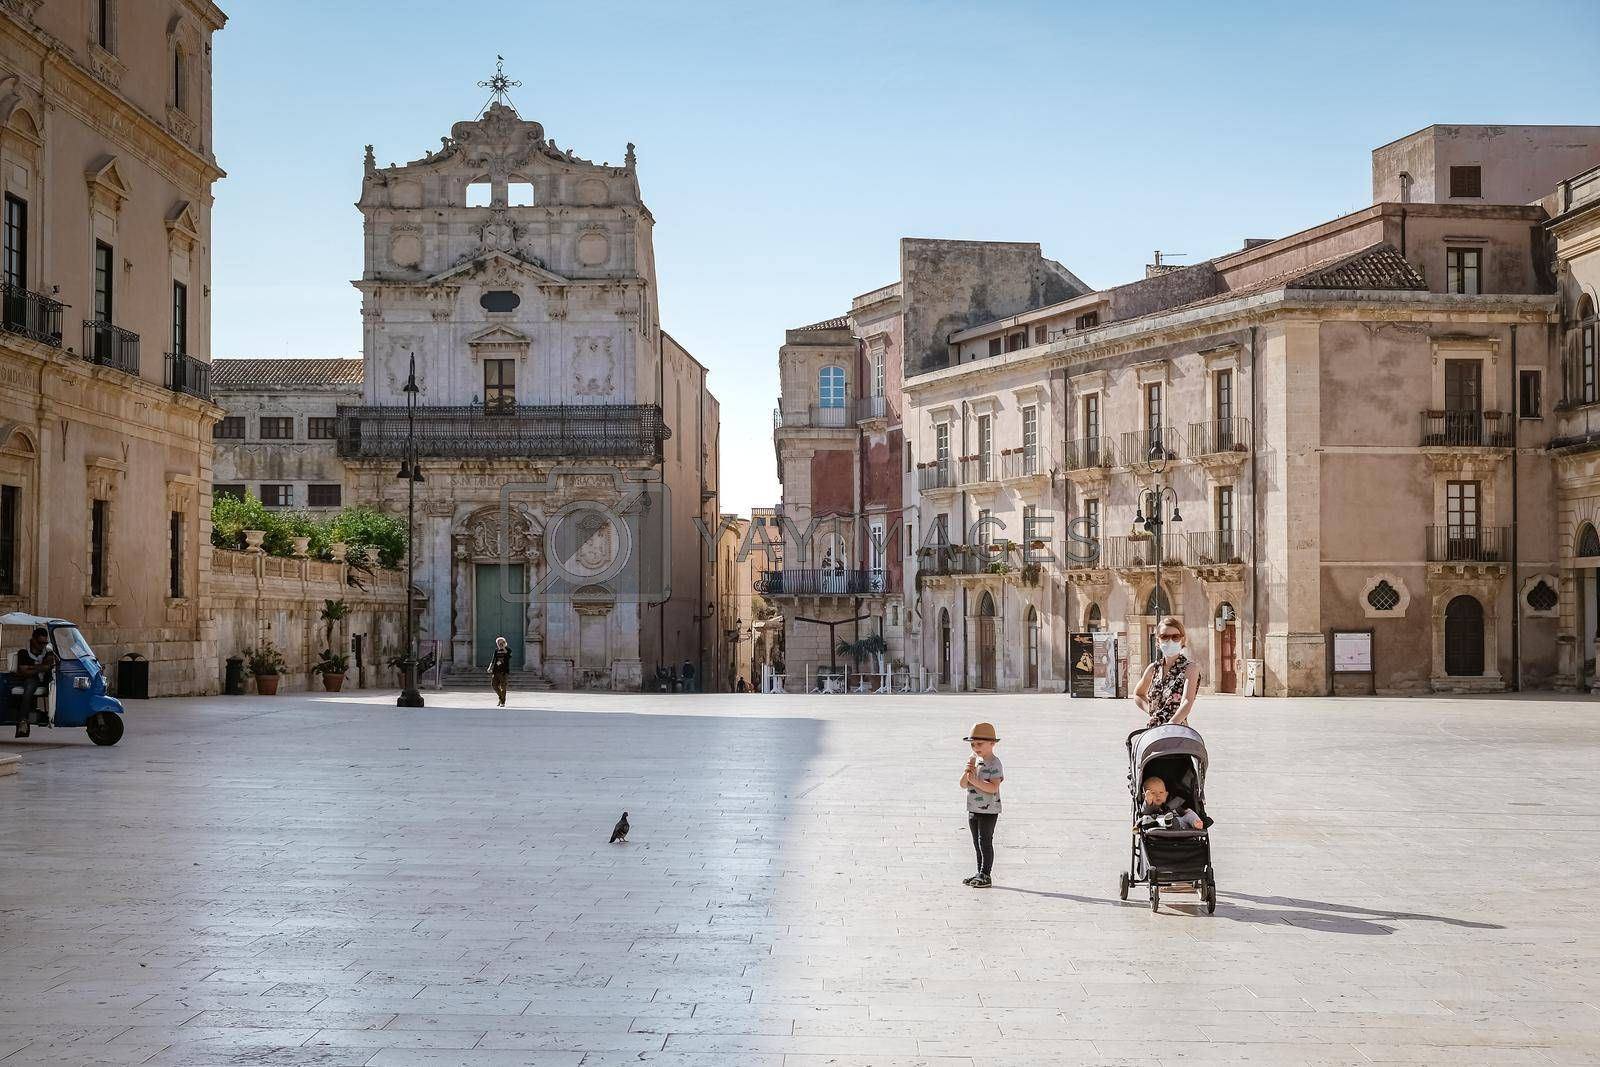 Ortigia in Syracuse Sicily Italy October 2020 in the Morning. Travel Photography from Syracuse, Italy on the island of Sicily. Cathedral Plaza and market with people wearing face protection during the 2020 pandemic covid 19 corona virus